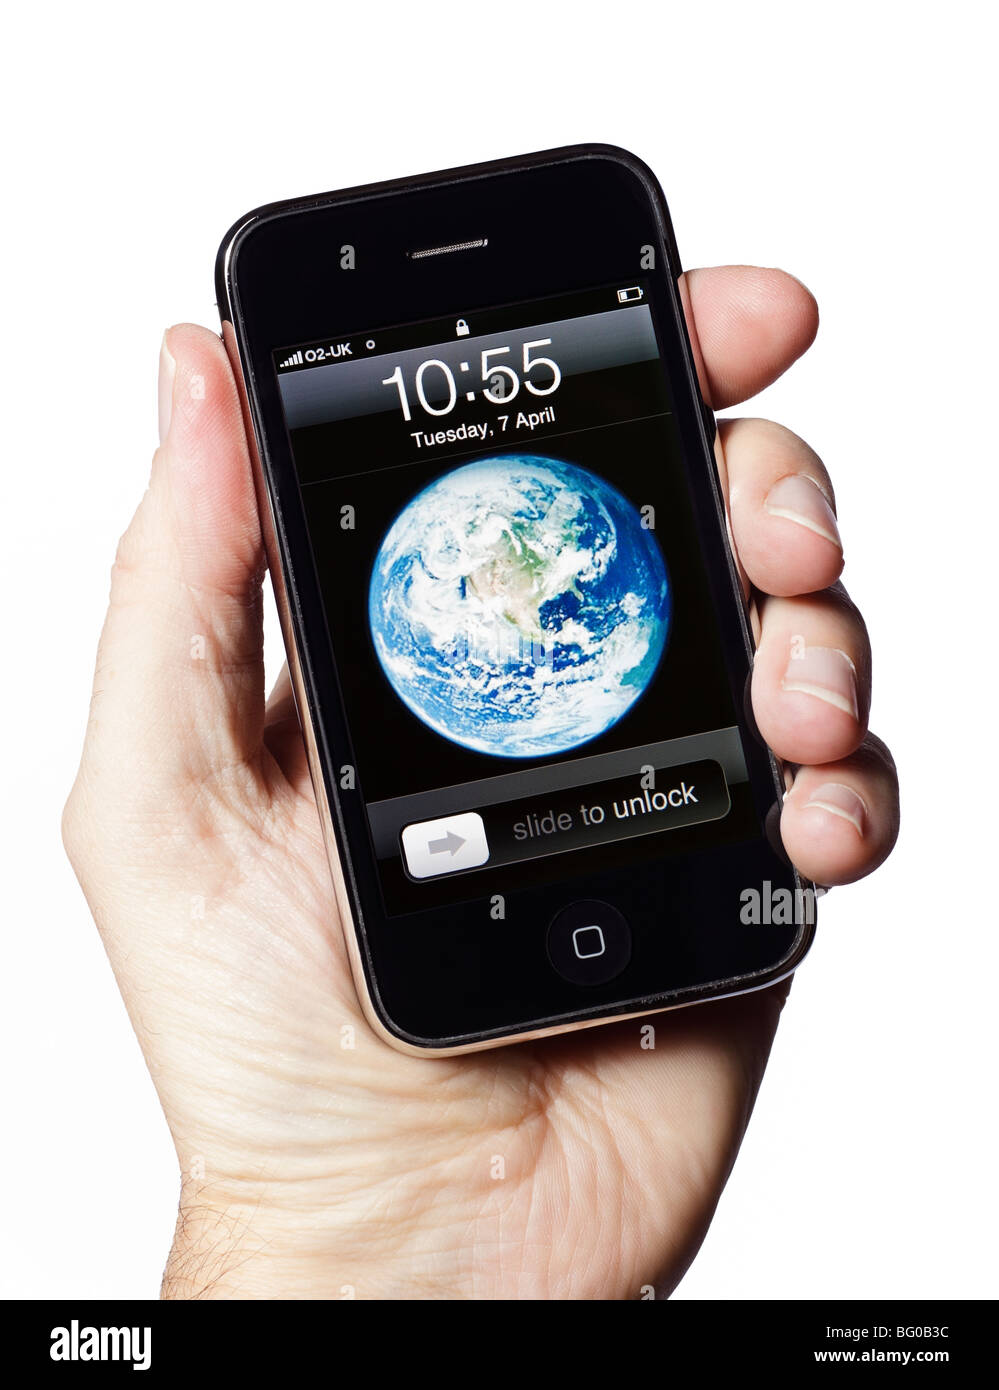 iPhone smartphone mobile phone smart phone showing start screen - Stock Image